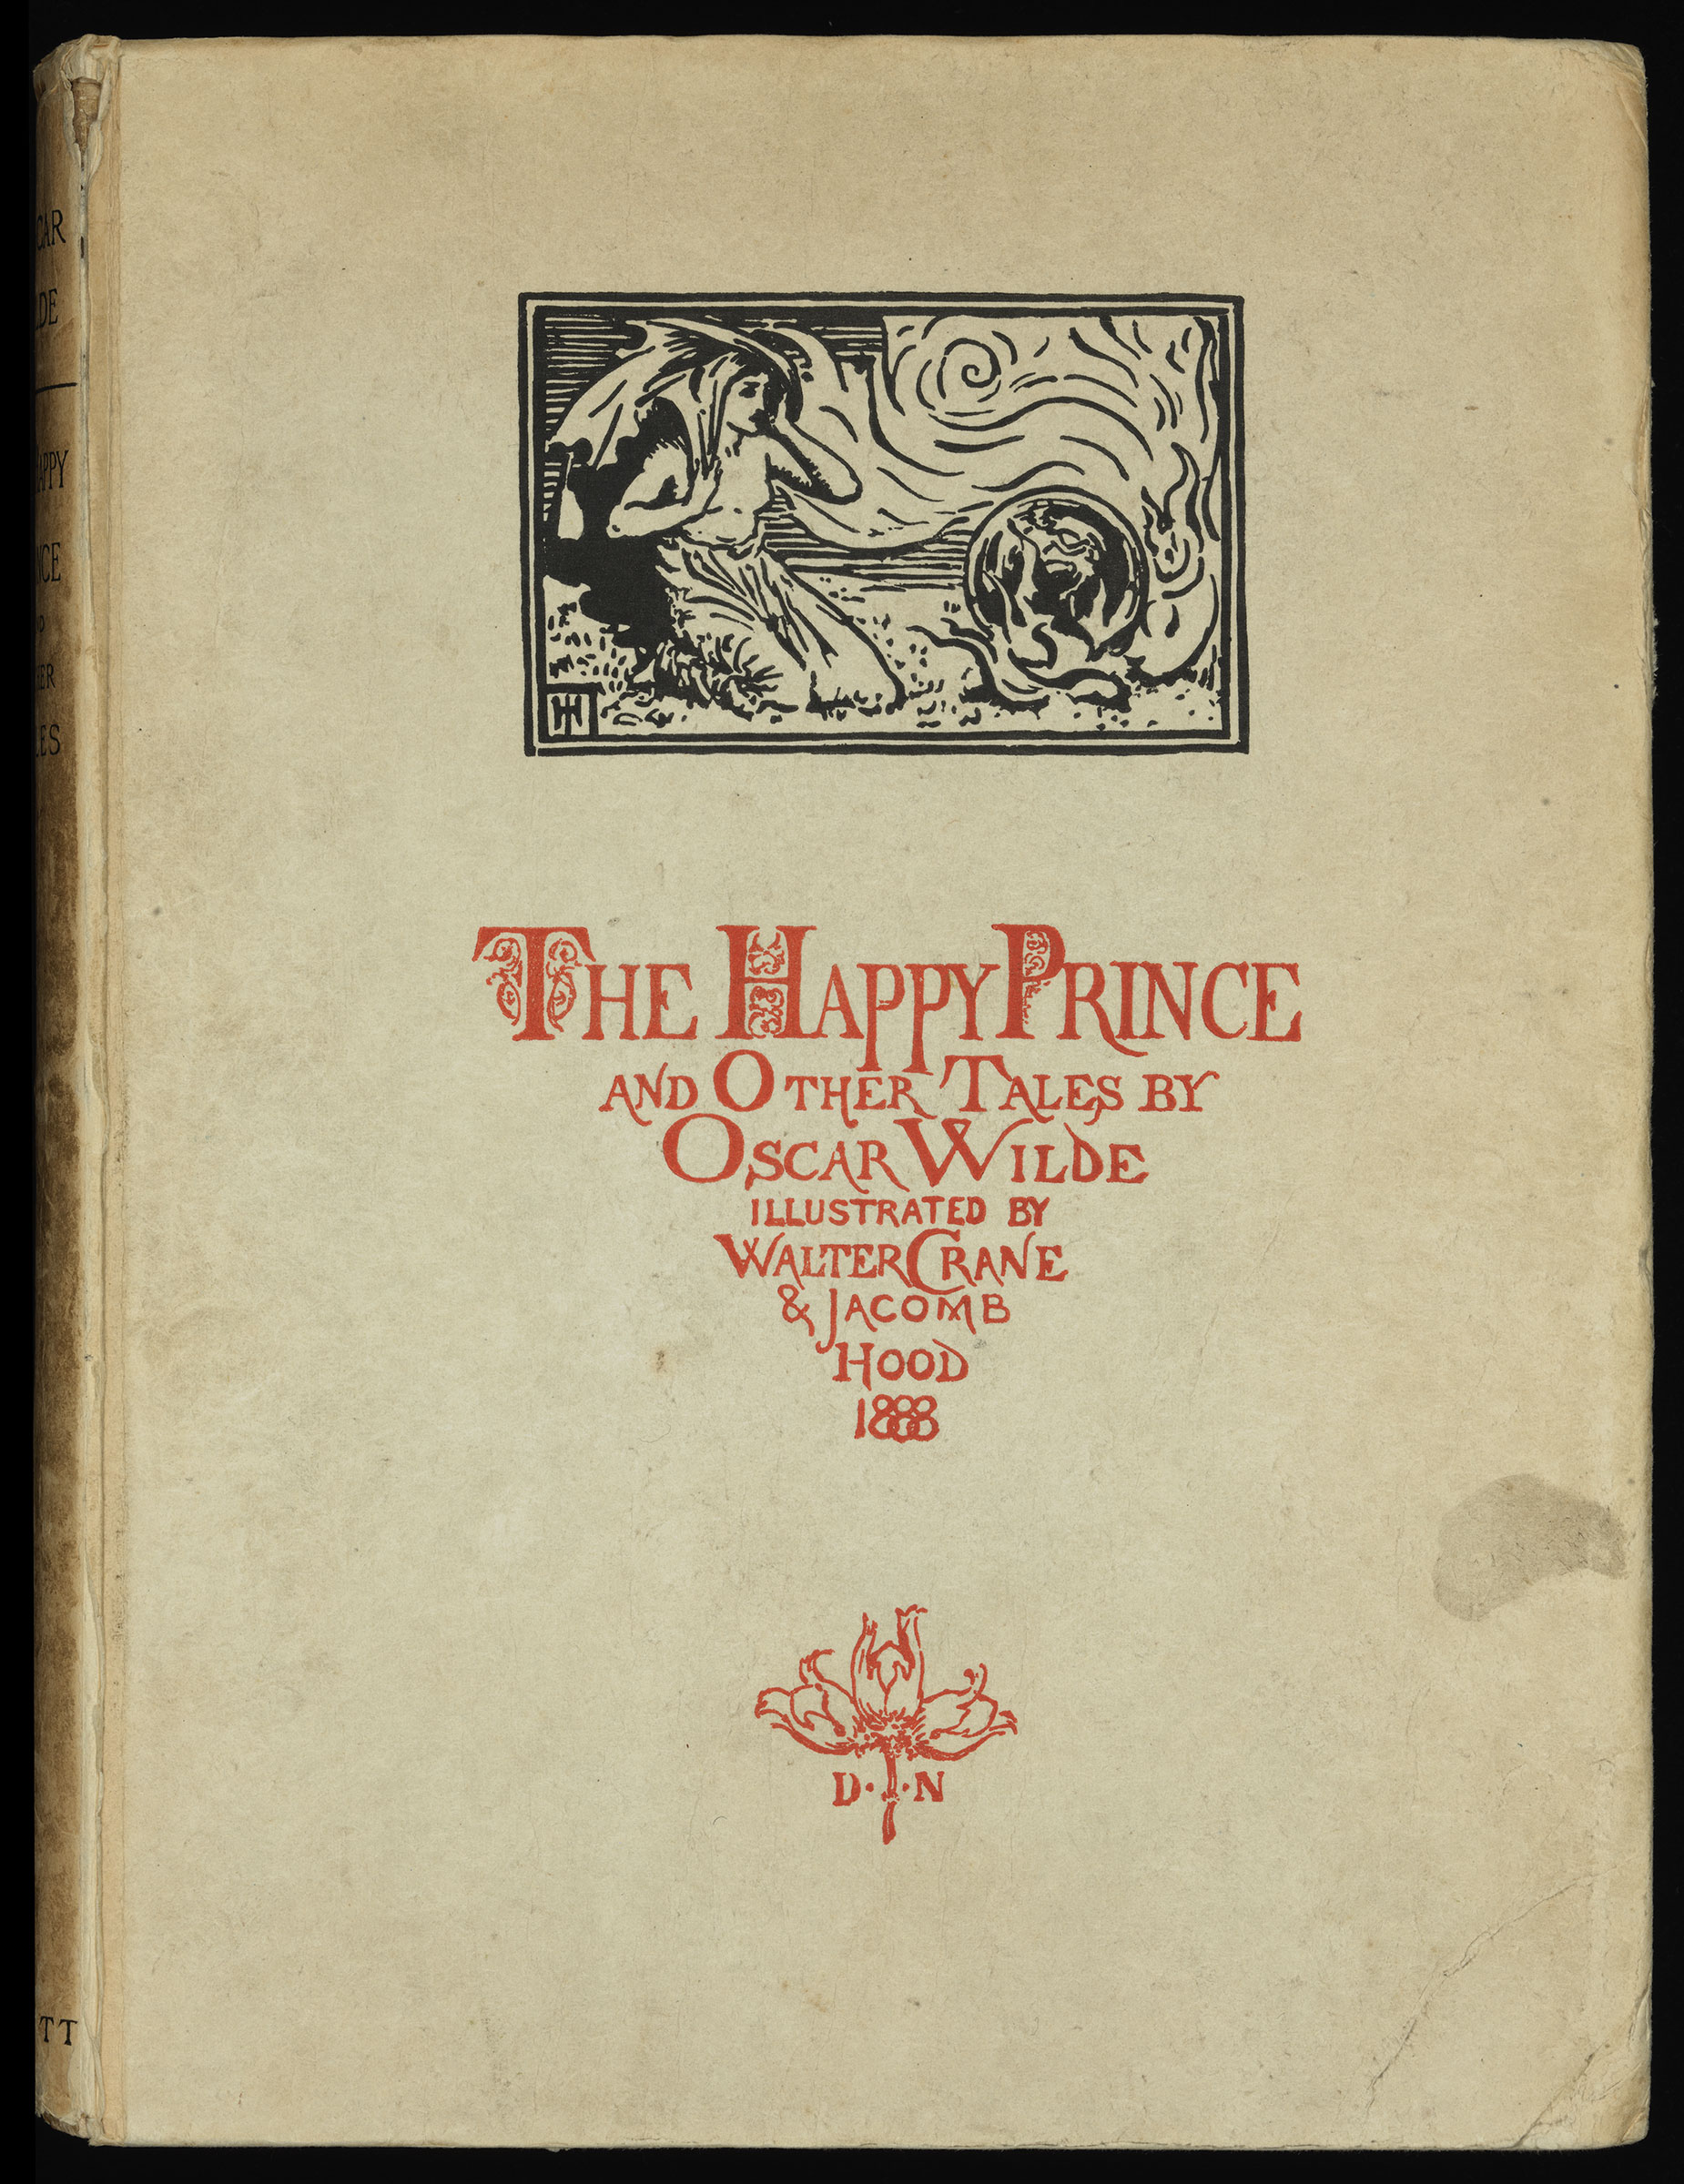 the happy prince 2 essay Happy prince oscar wilde essay, he was happy when alive, because he was kept ignorant of any sadness or suffering outside his palace walls his life was one of joy and.